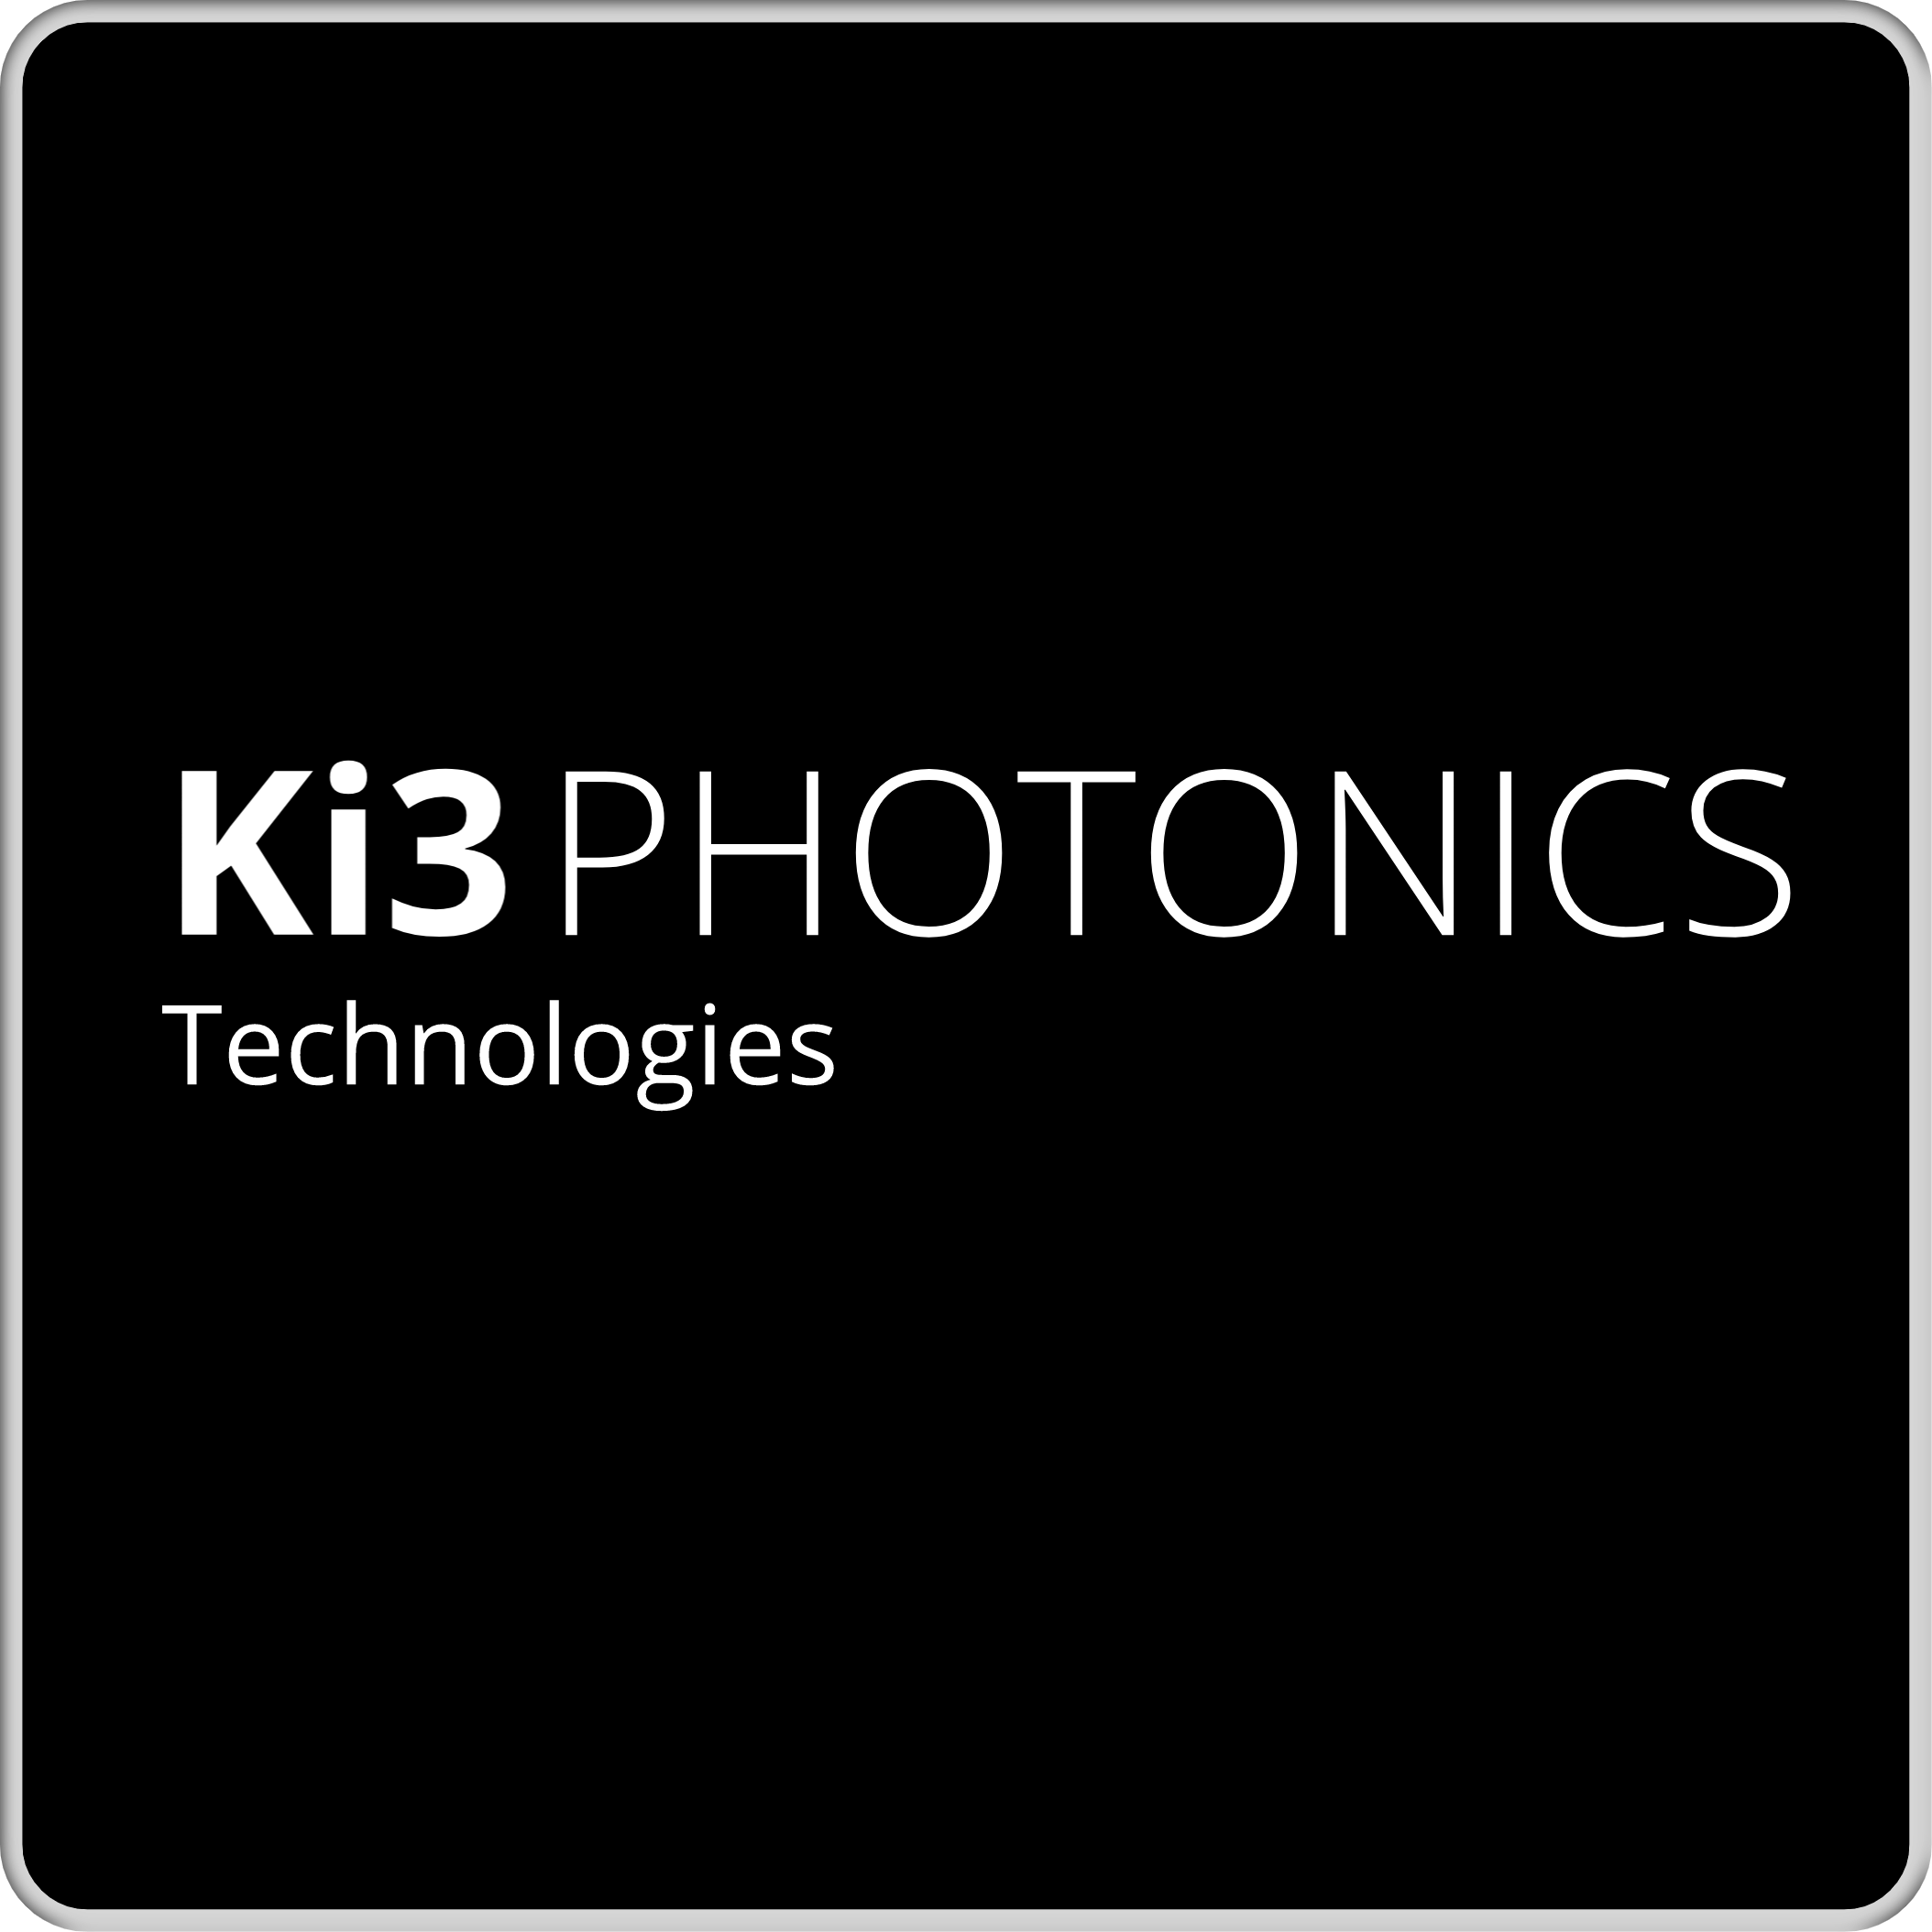 Ki3 Photonics Technologies Inc.